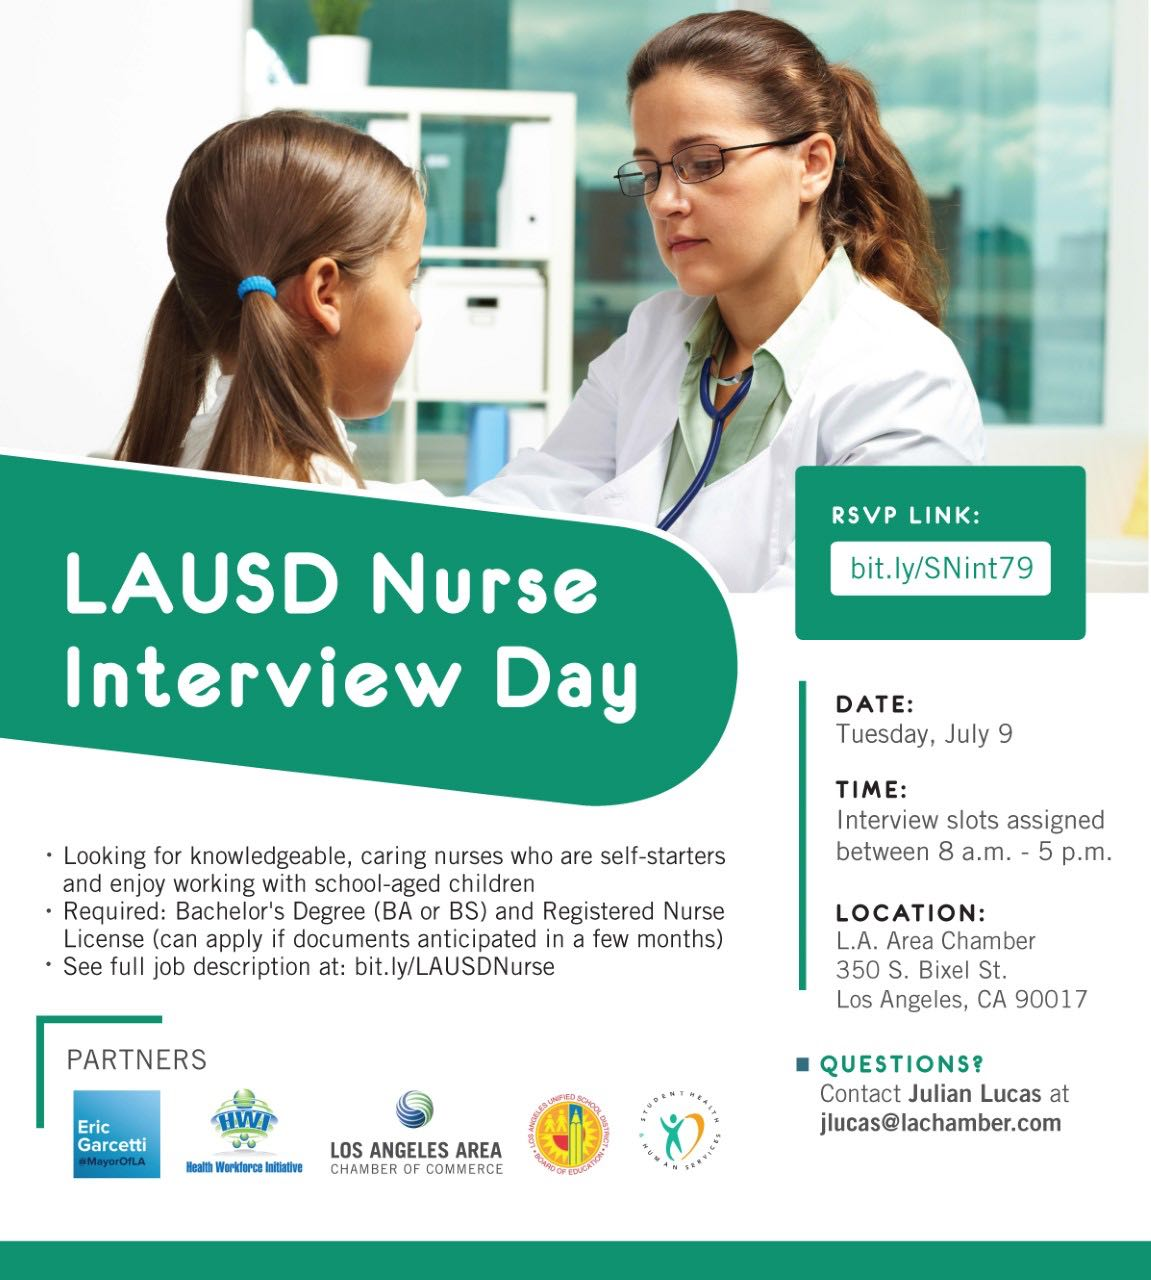 LAUSD Nurse Interview Day